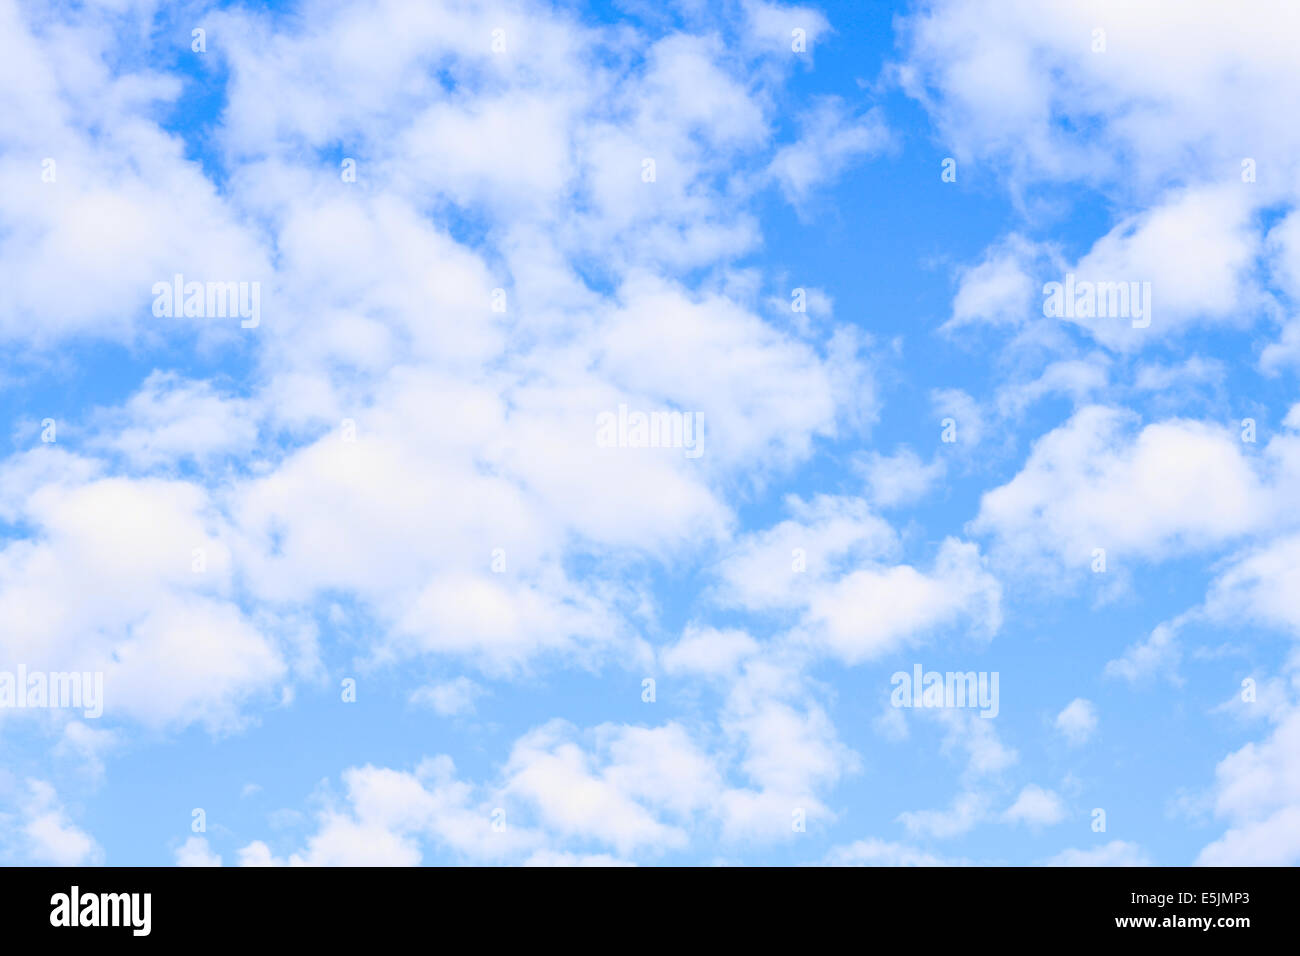 Blue sky and lots small clouds, may be used as background - Stock Image